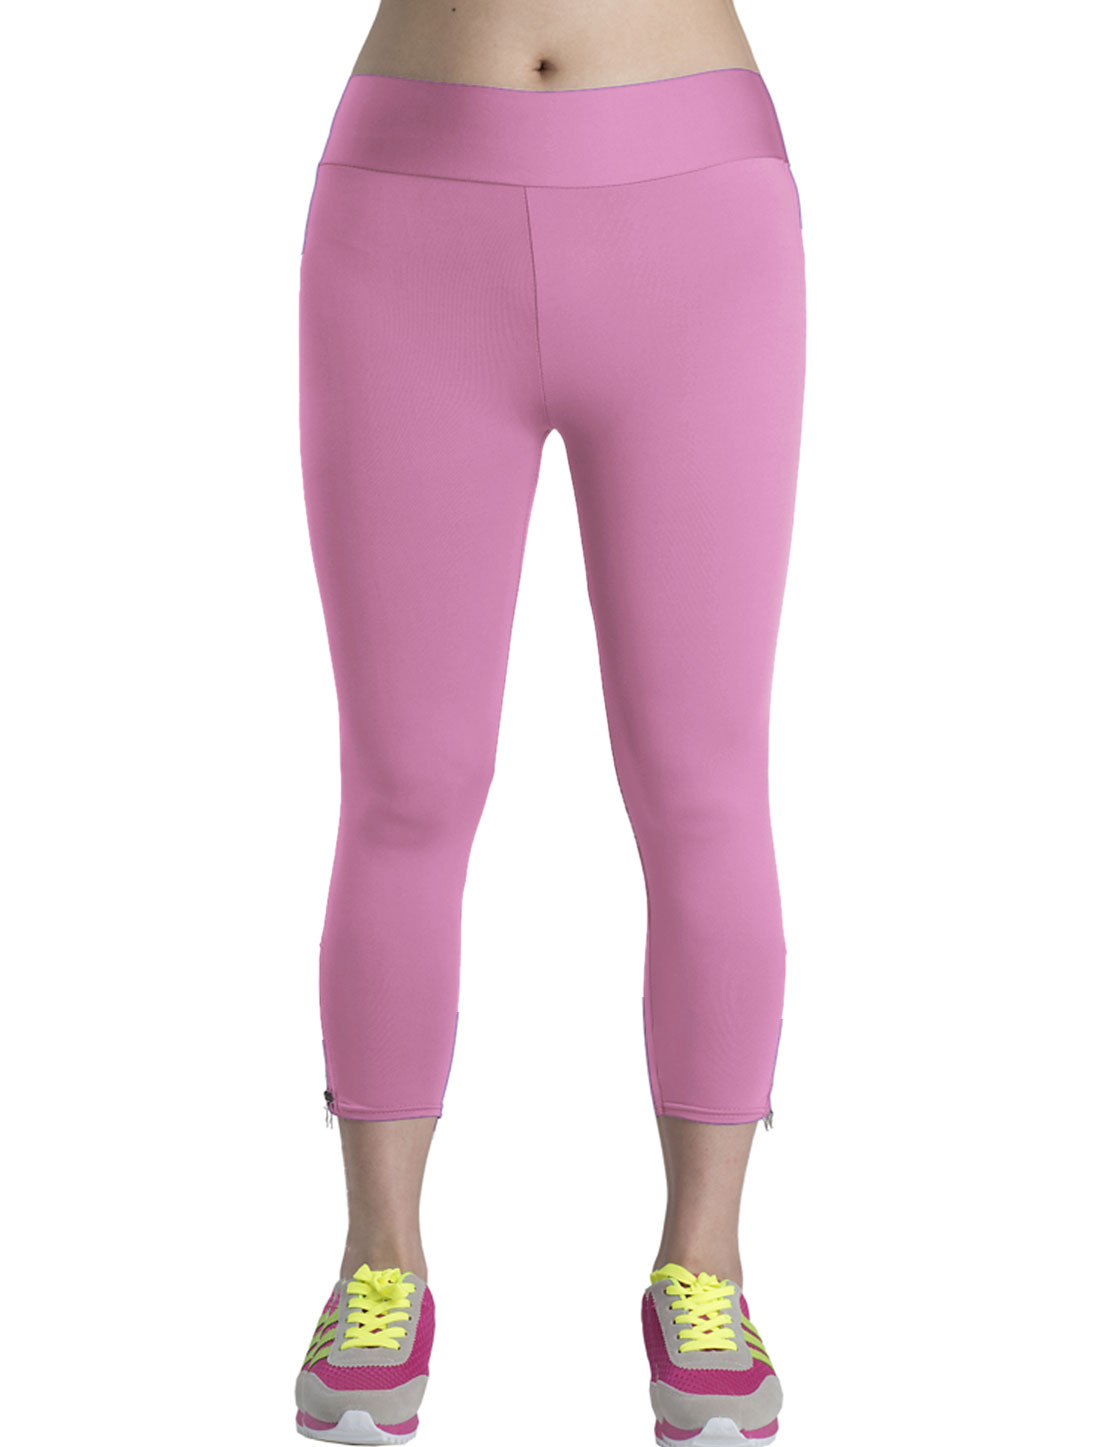 Lady All Over Stretchy Casual Skinny Capri Pants Pink M